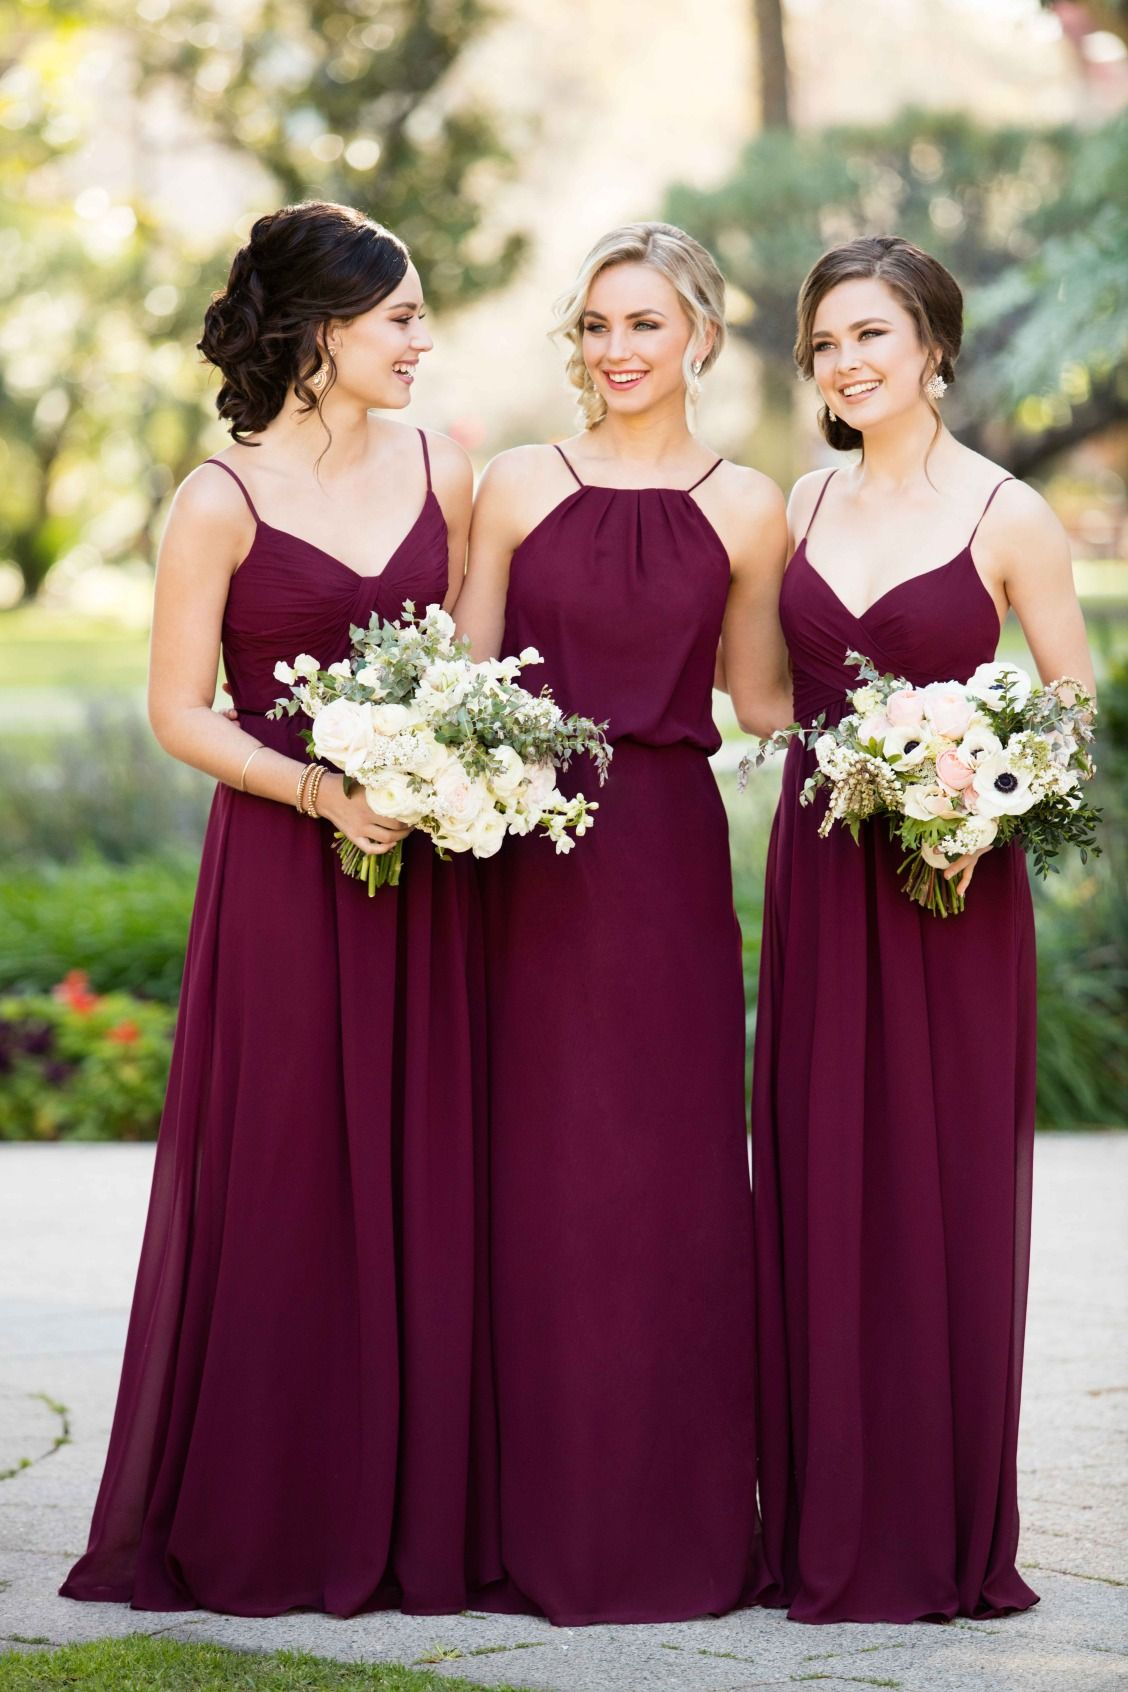 Designer bridesmaid dresses sorella vita bridal parties burgundy bridesmaids dress for a mix and match bridal party ombrellifo Images